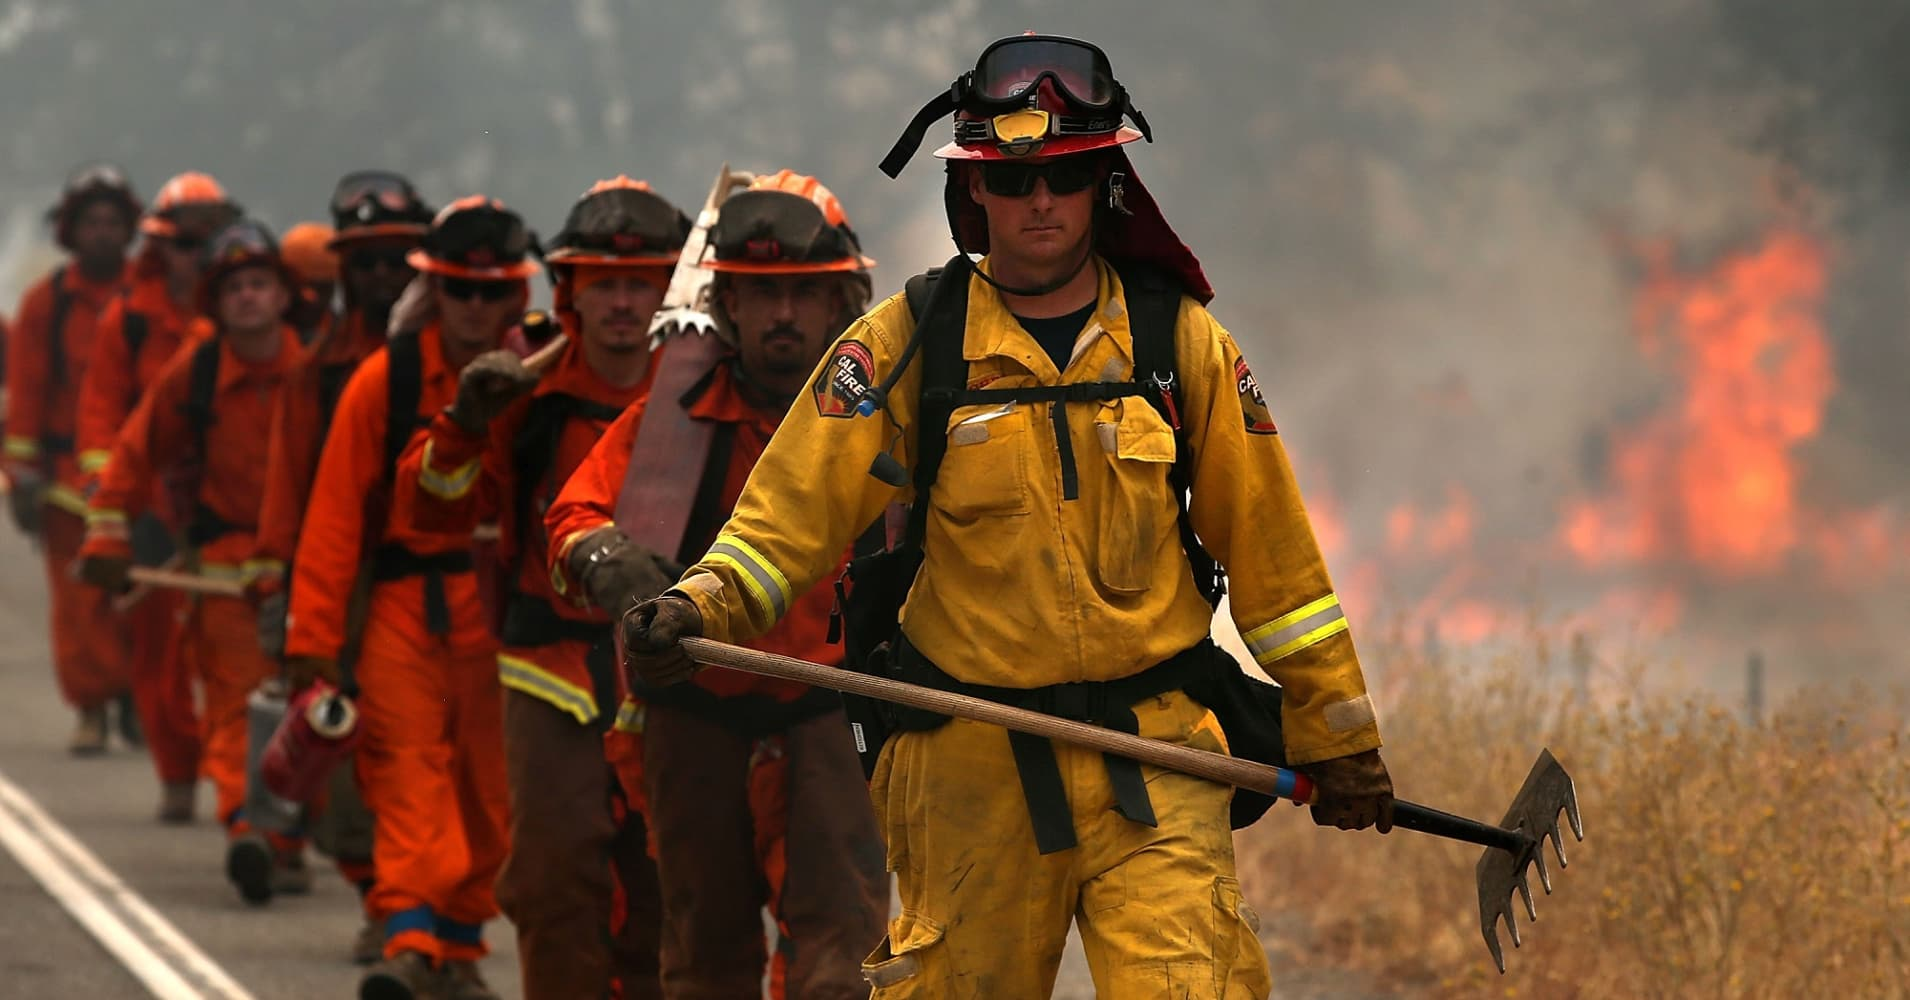 A Cal Fire firefighter leads a group of firefighters during a burn operation.